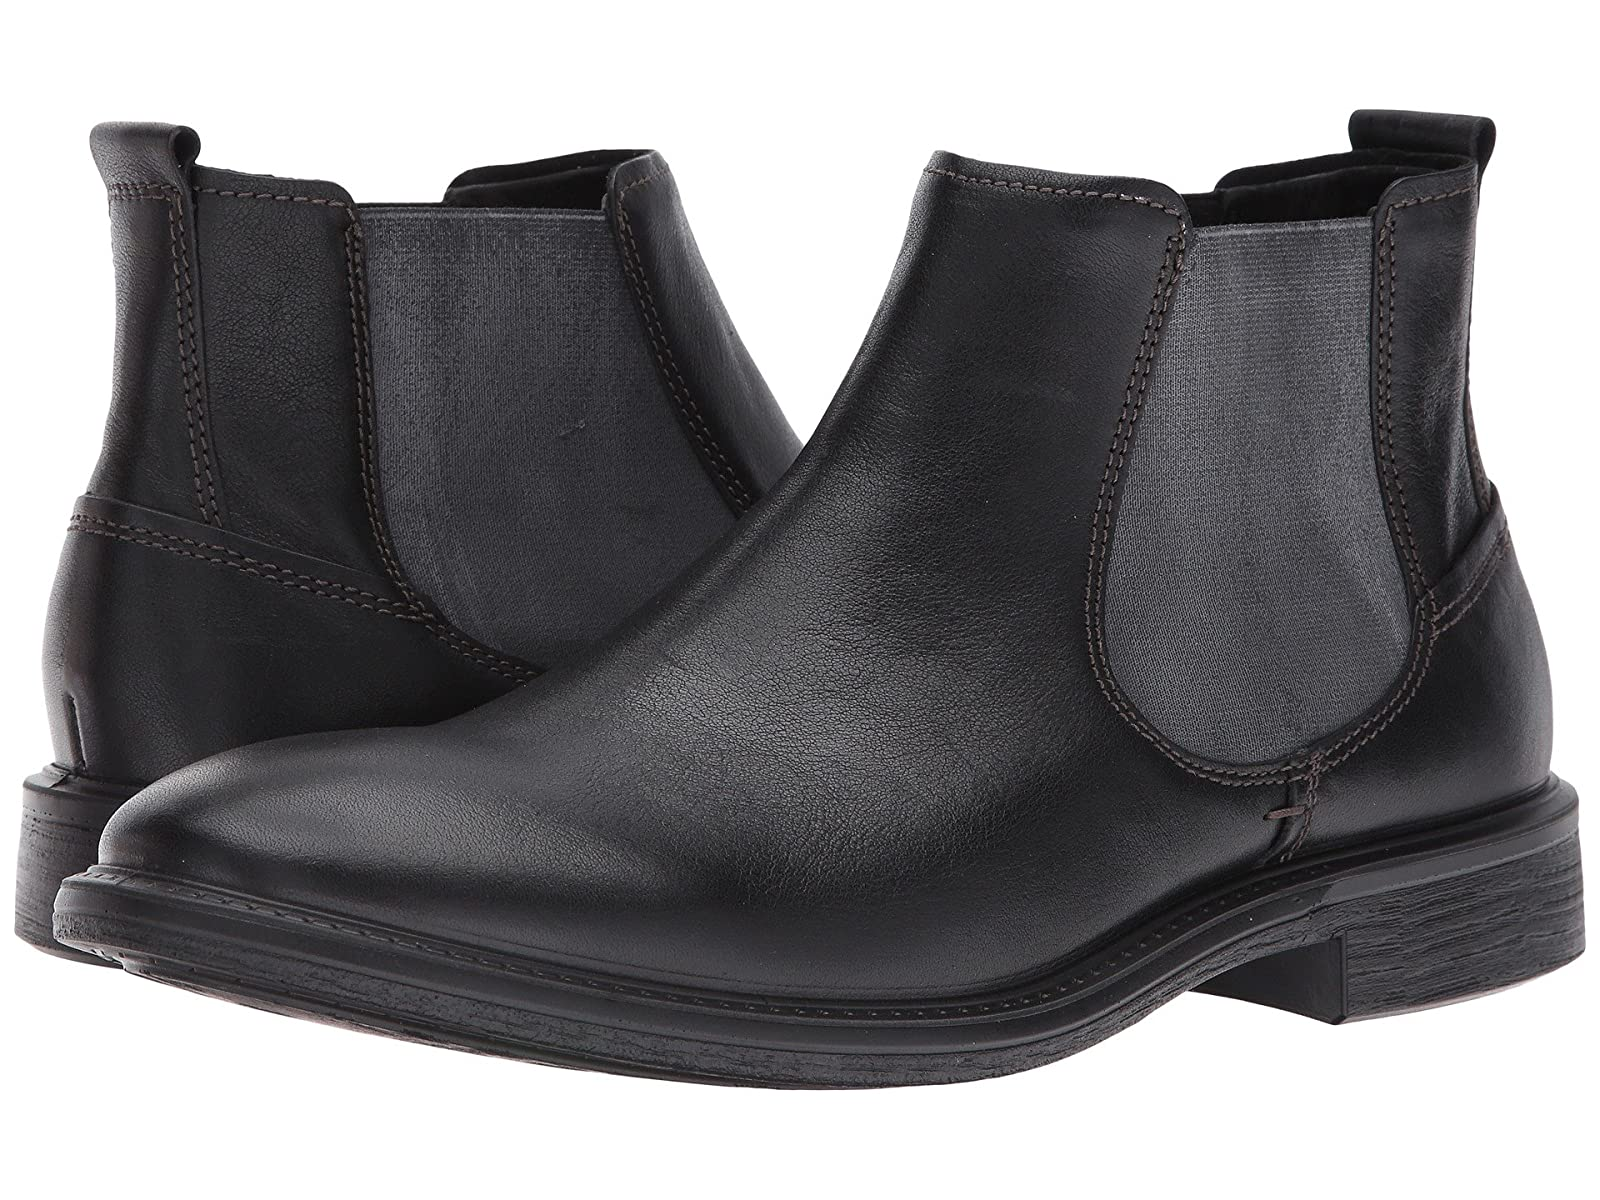 ECCO Knoxville Chelsea BootCheap and distinctive eye-catching shoes